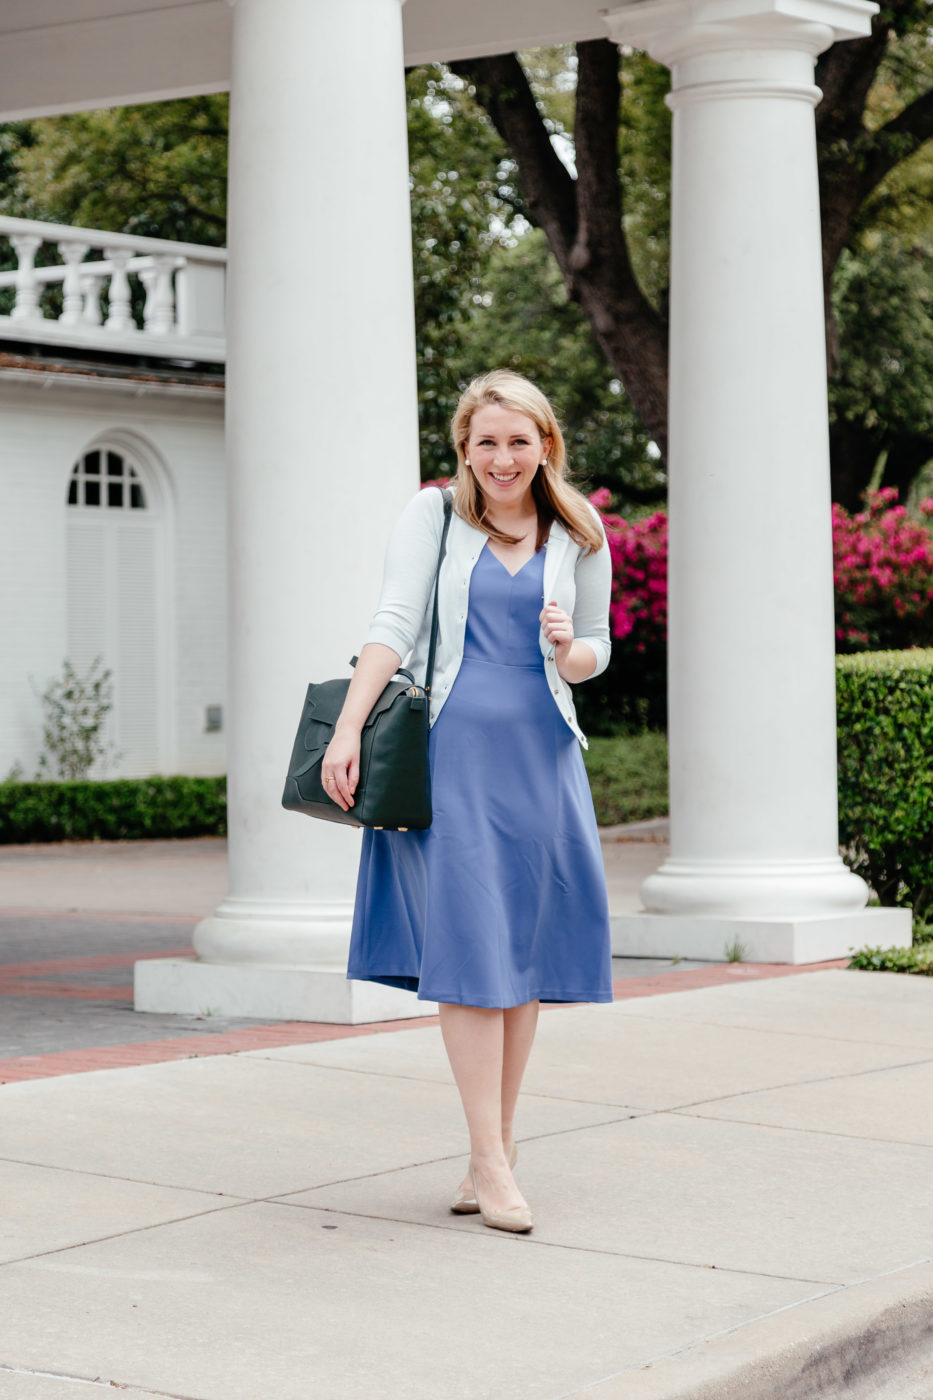 How to Dress for Consulting | How to Dress for Work this Summer | Business Attire Outfit Inspiration via Glitter & Spice